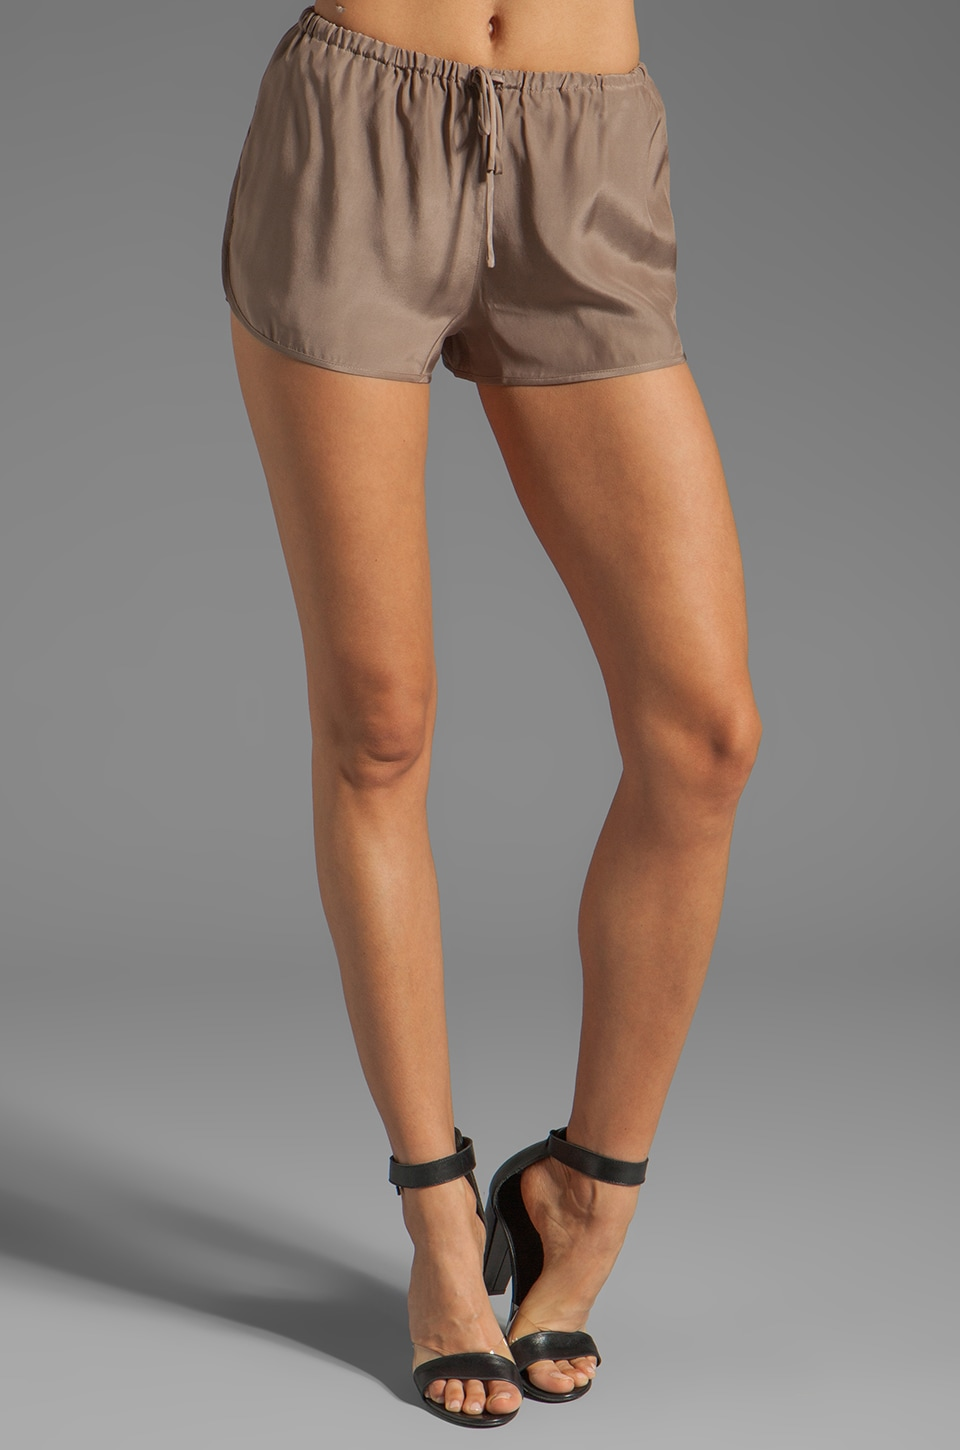 BLAQUE LABEL Silk Shorts in Coffee